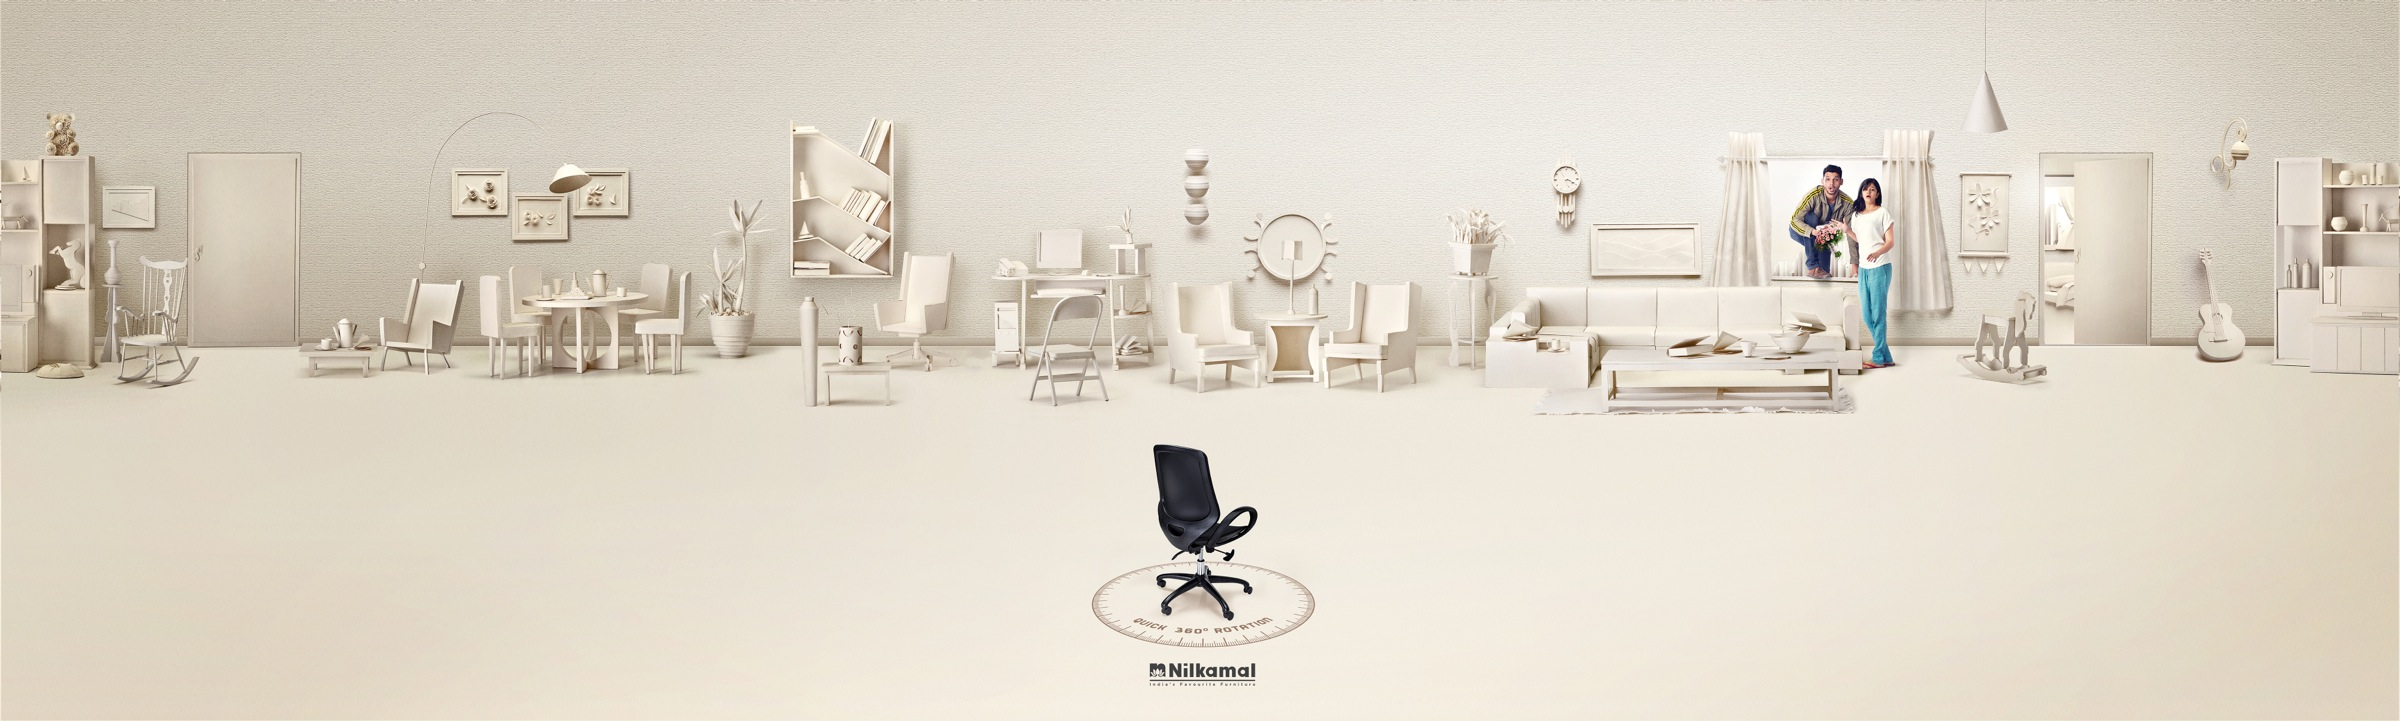 nilkamal_quick_360_rotation_chair_home